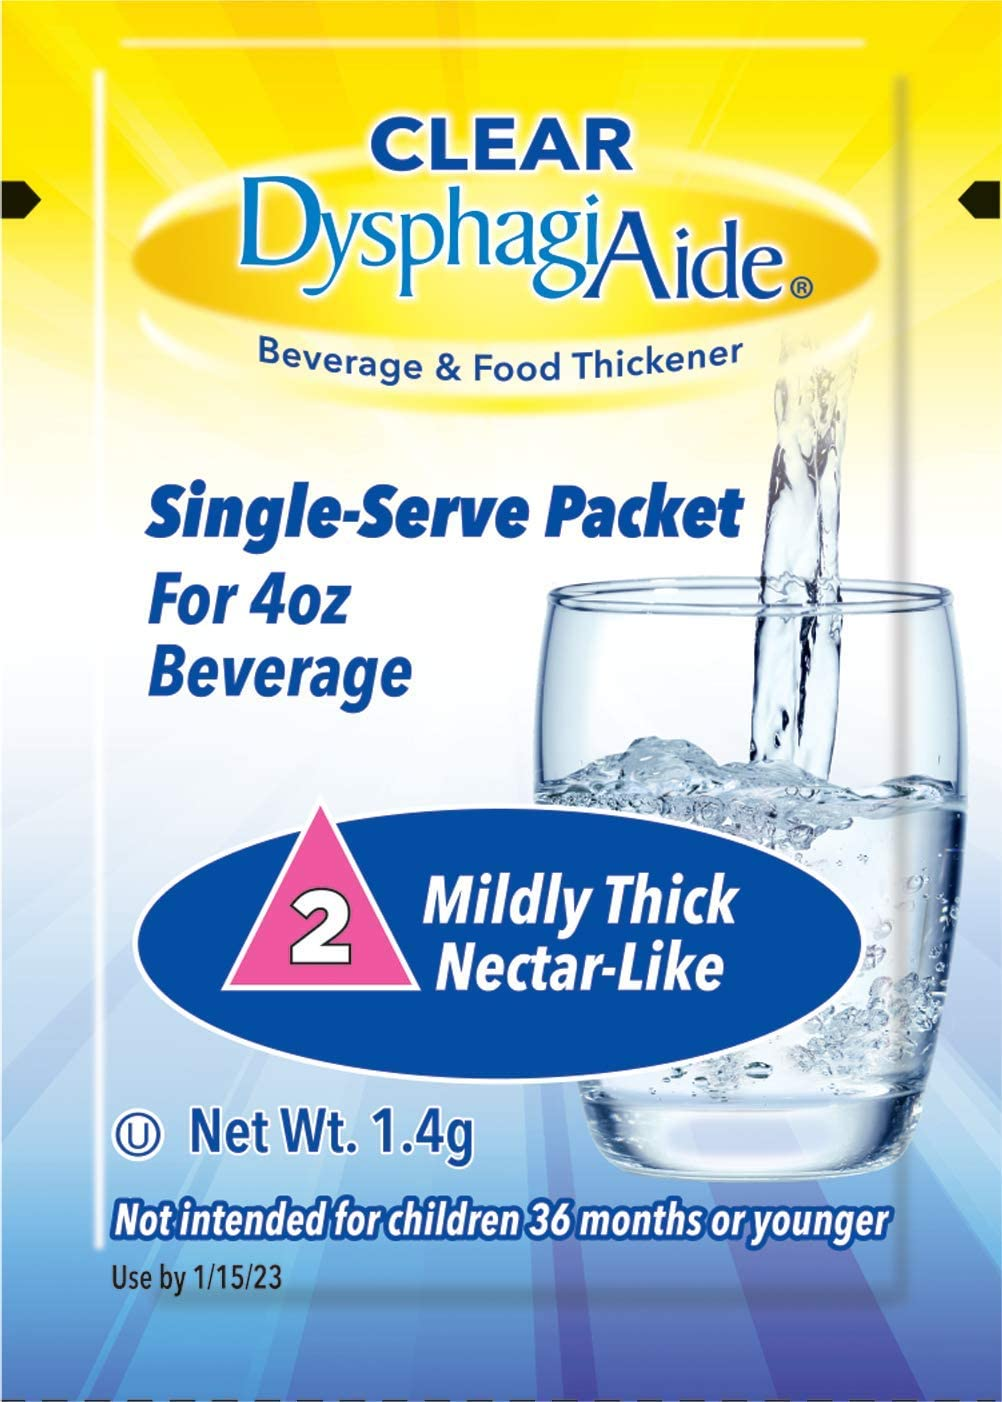 Clear DysphagiAide® Instant Beverage and Food Thickener Packets, 24 Count, Level 2-Nectar Thick